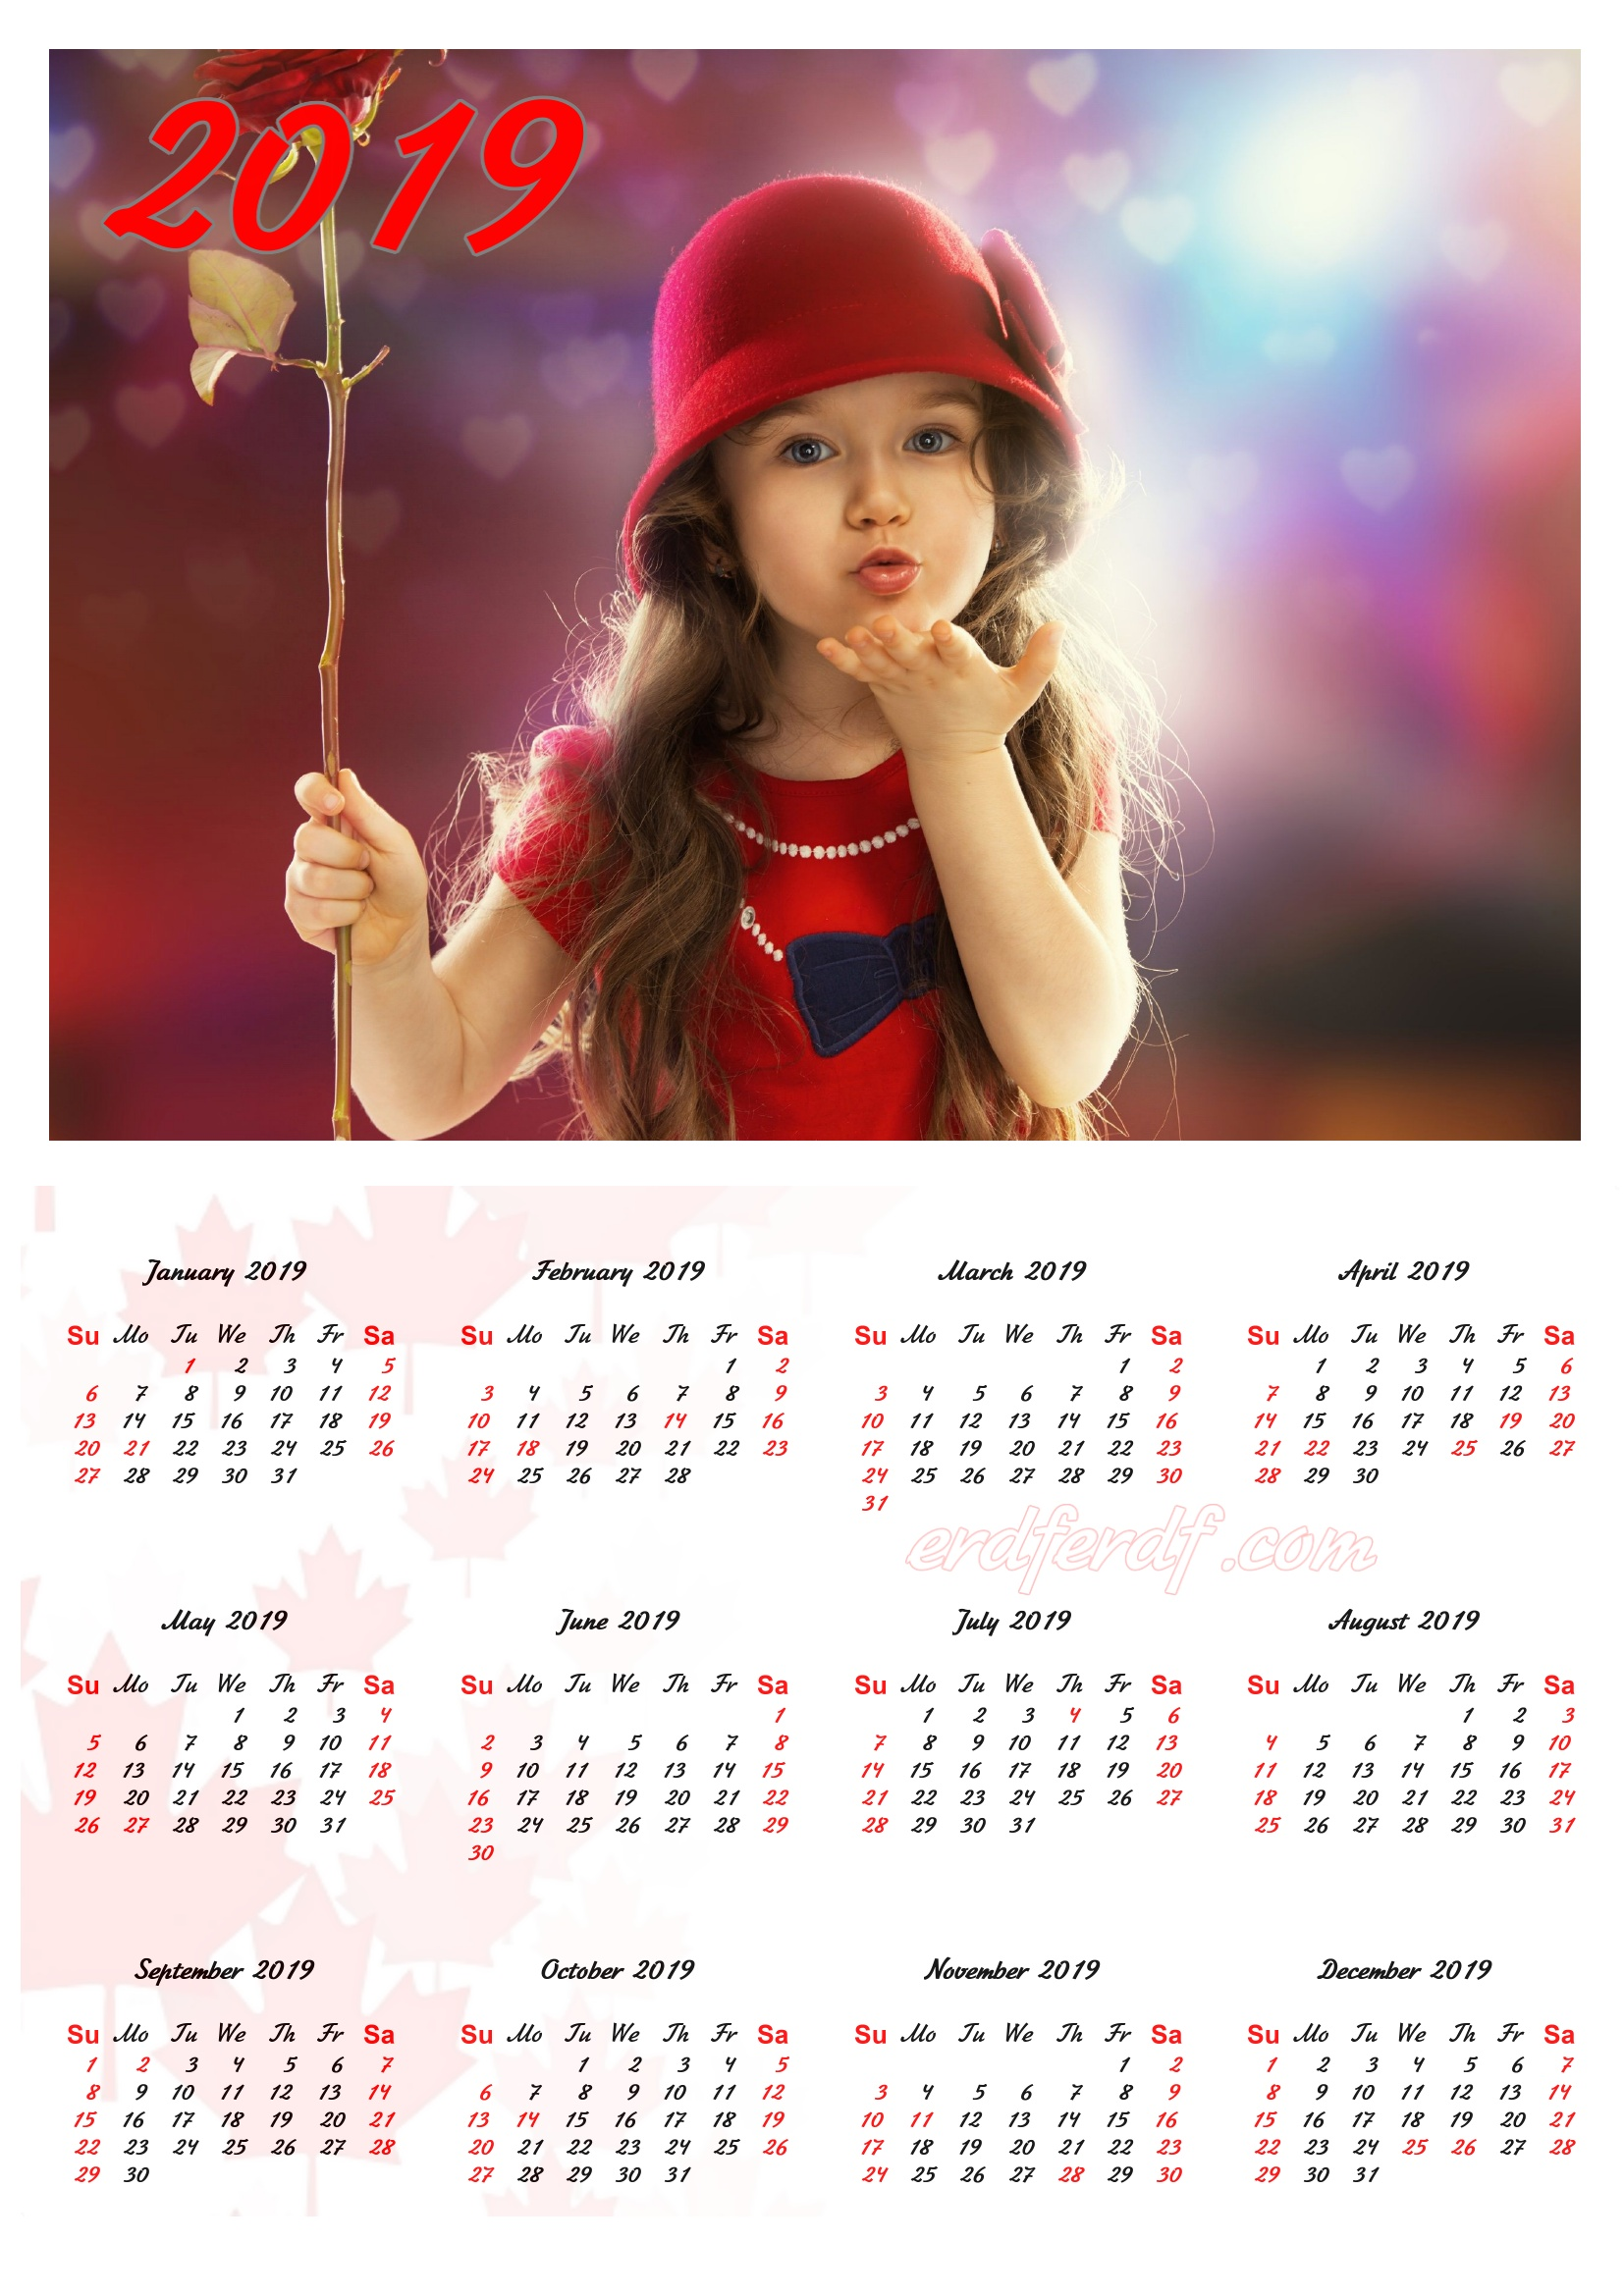 Canada 2019 Calendar Printable Free Download